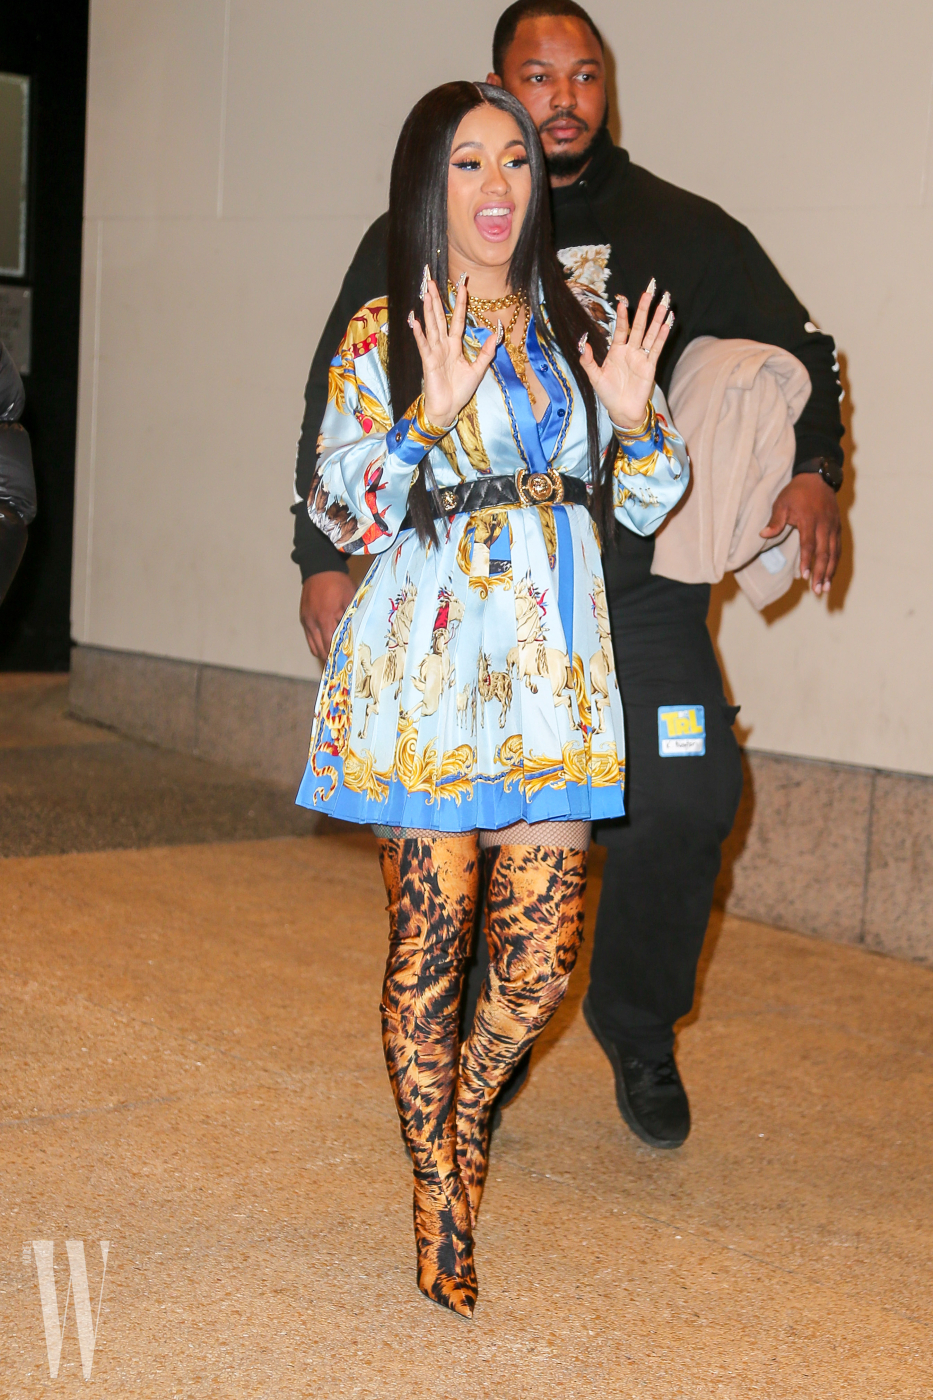 Cardi B was spotted leaving the the TRL studios in New York City